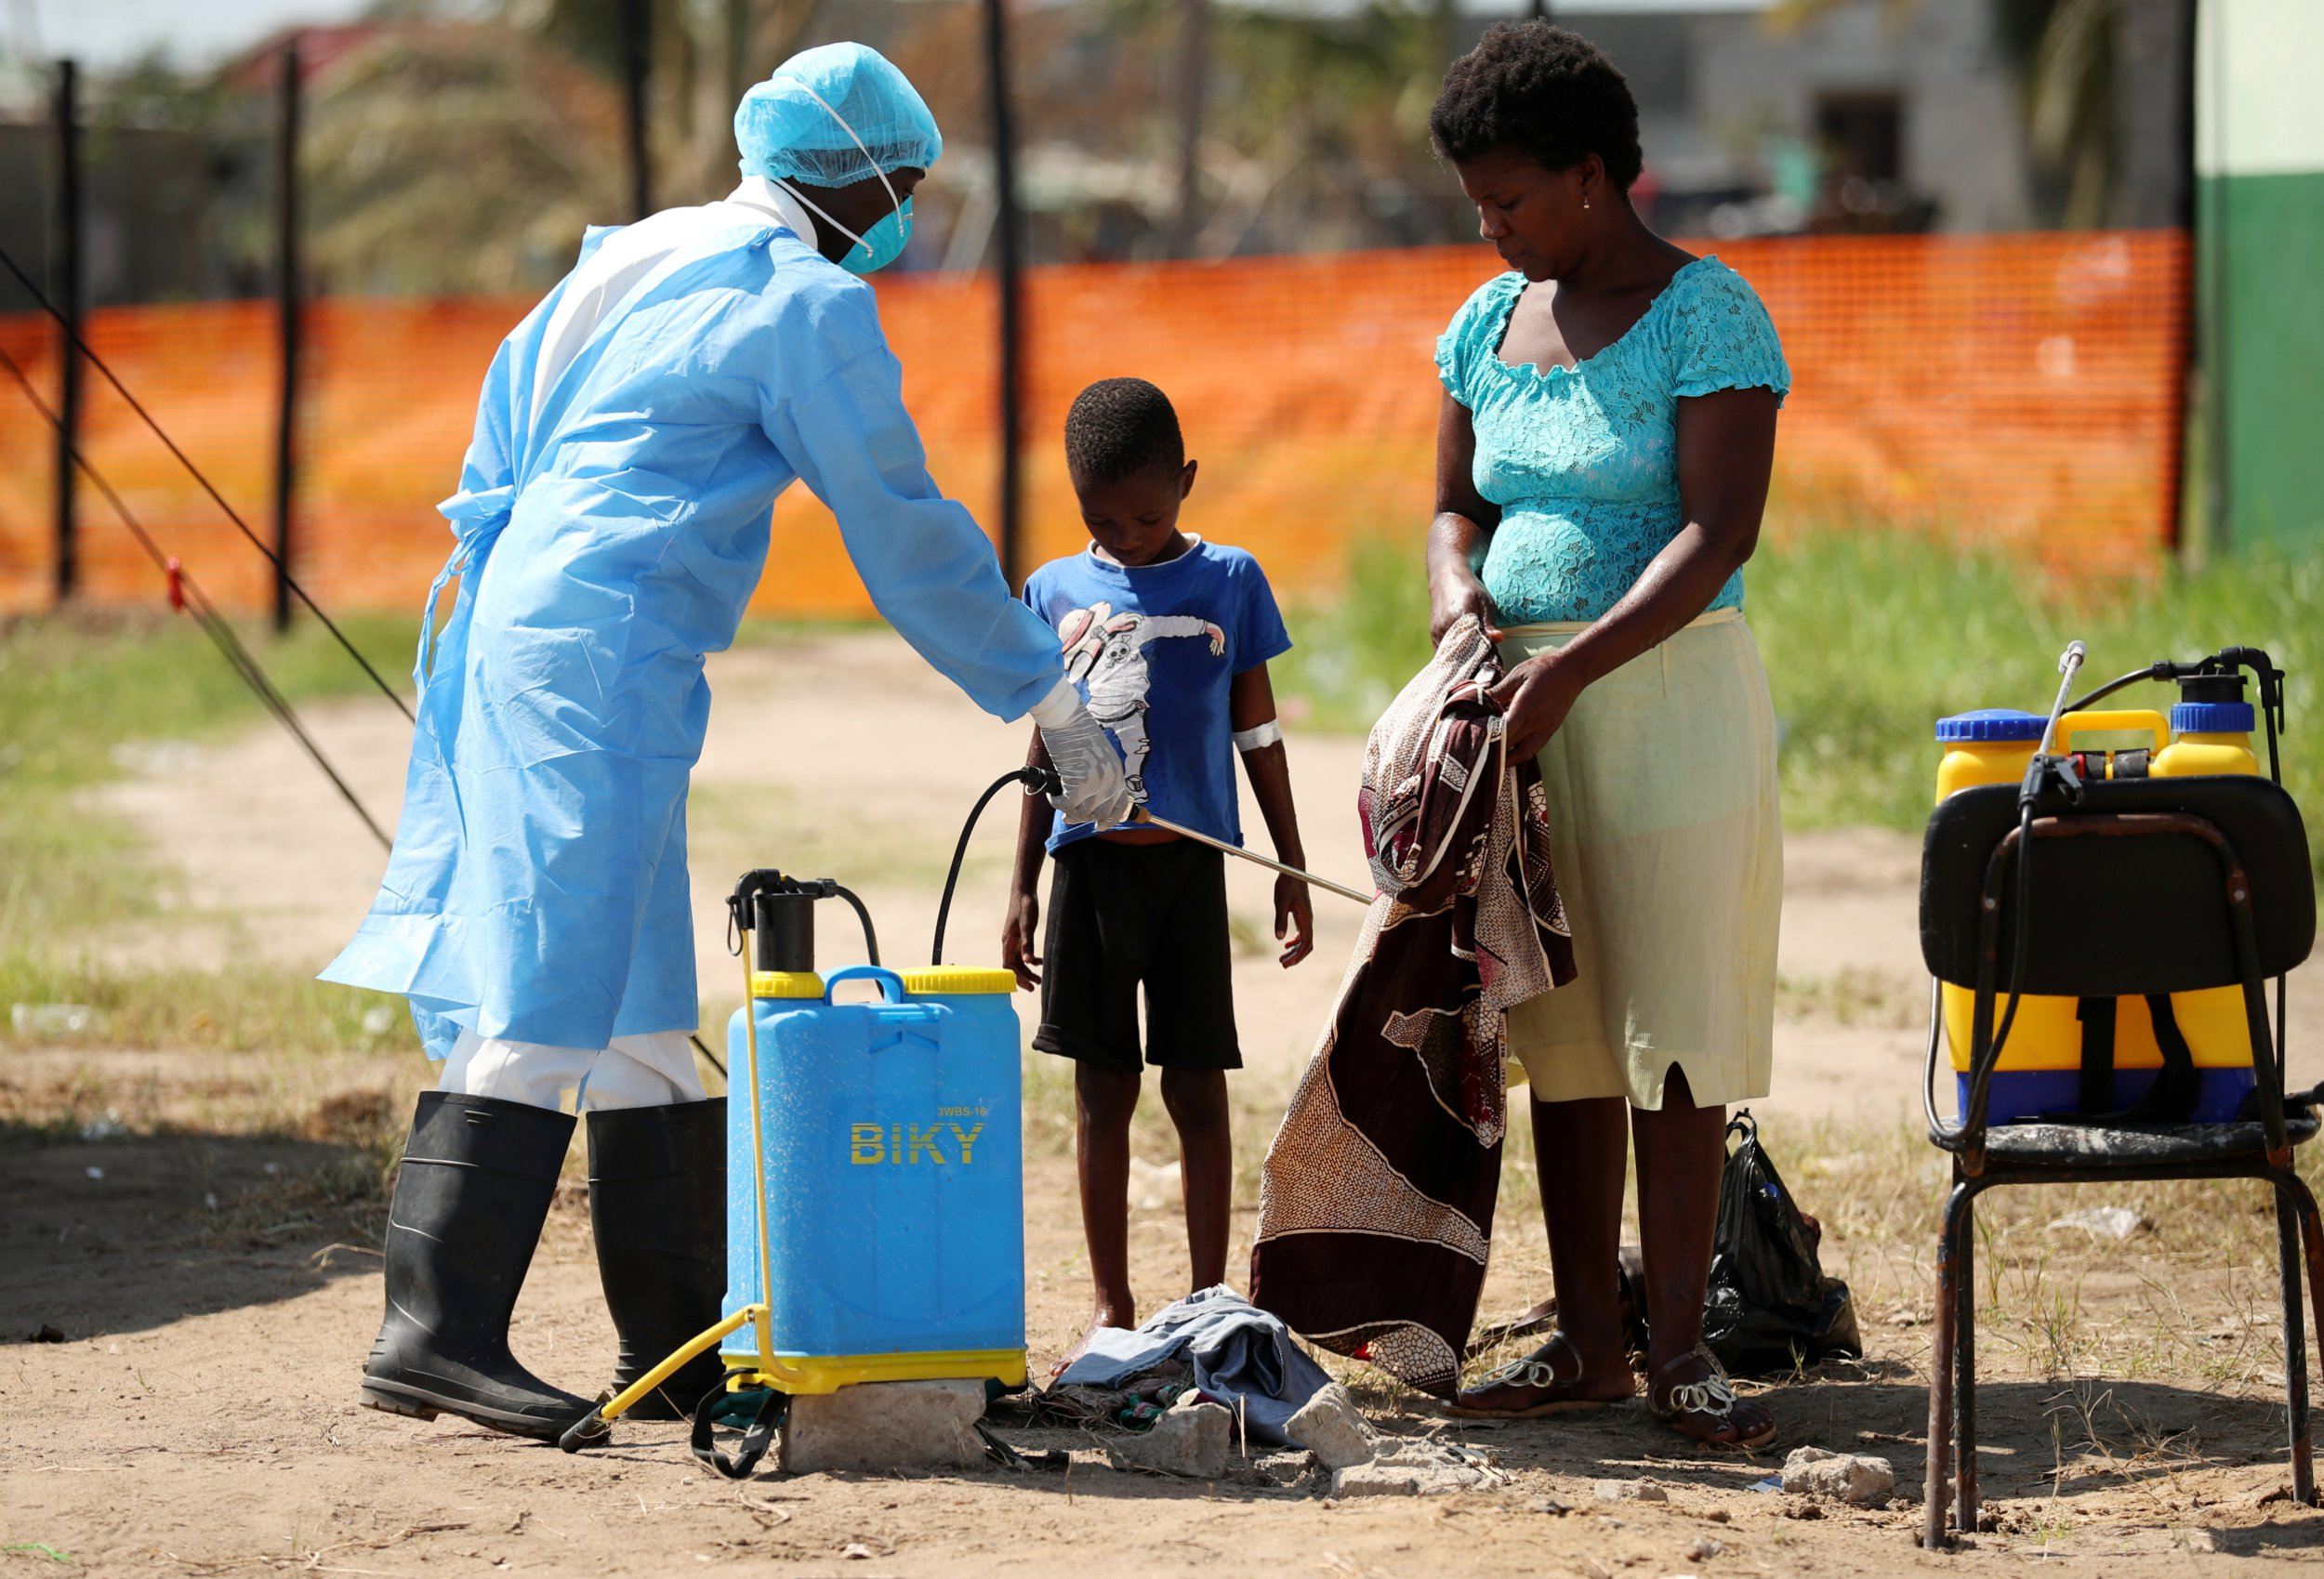 Medical staff spray disinfectant at a cholera treatment centre set up in the aftermath of Cyclone Idai in Beira, Mozambique, March 29, 2019. REUTERS/Mike Hutchings